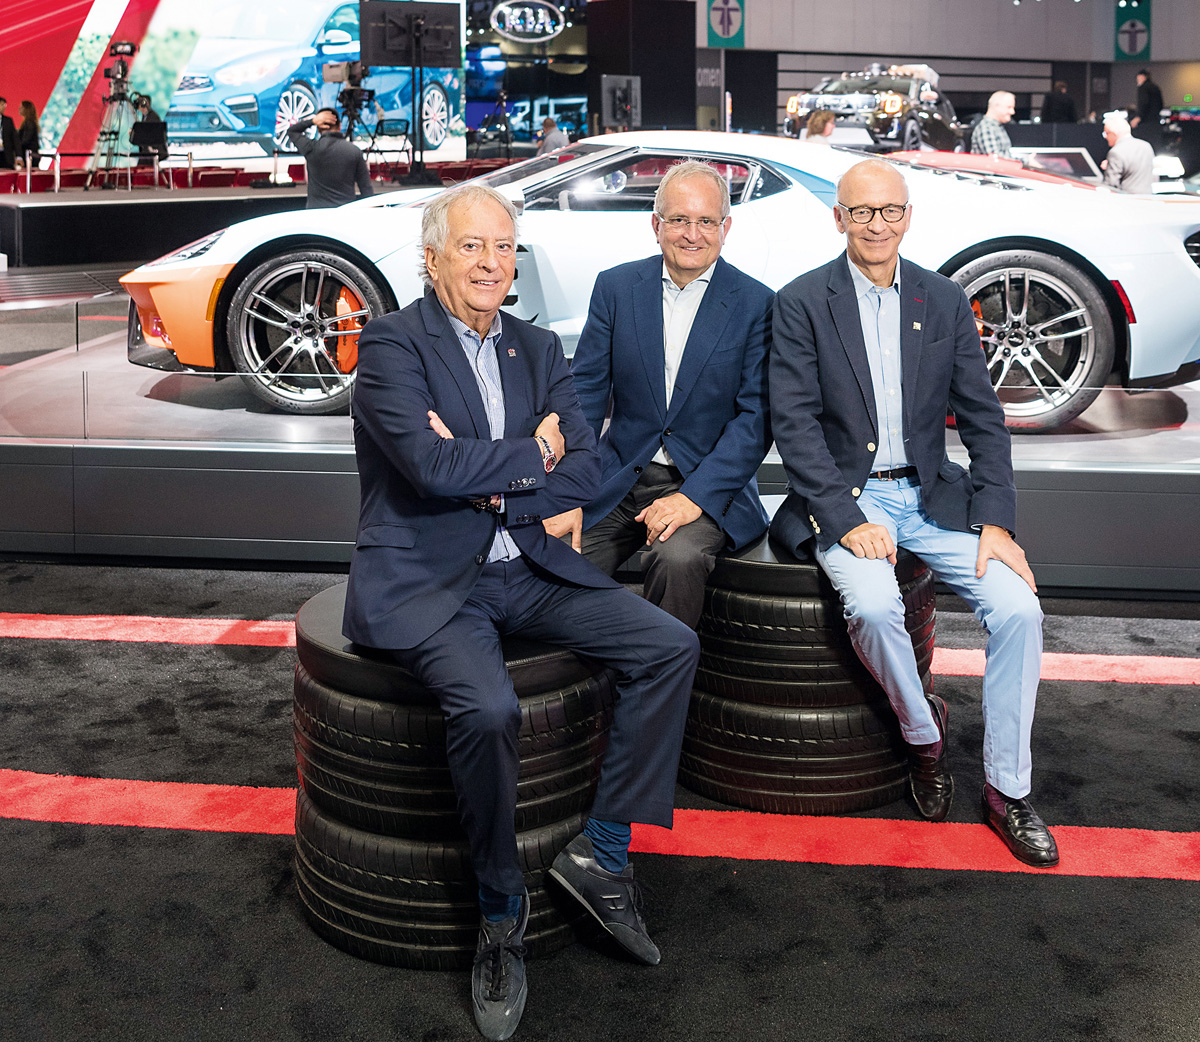 Trio du salon Hefti, Launaz et Turrettini posent au Salon de l'automobile de Los Angeles devant la légendaire Ford GT.